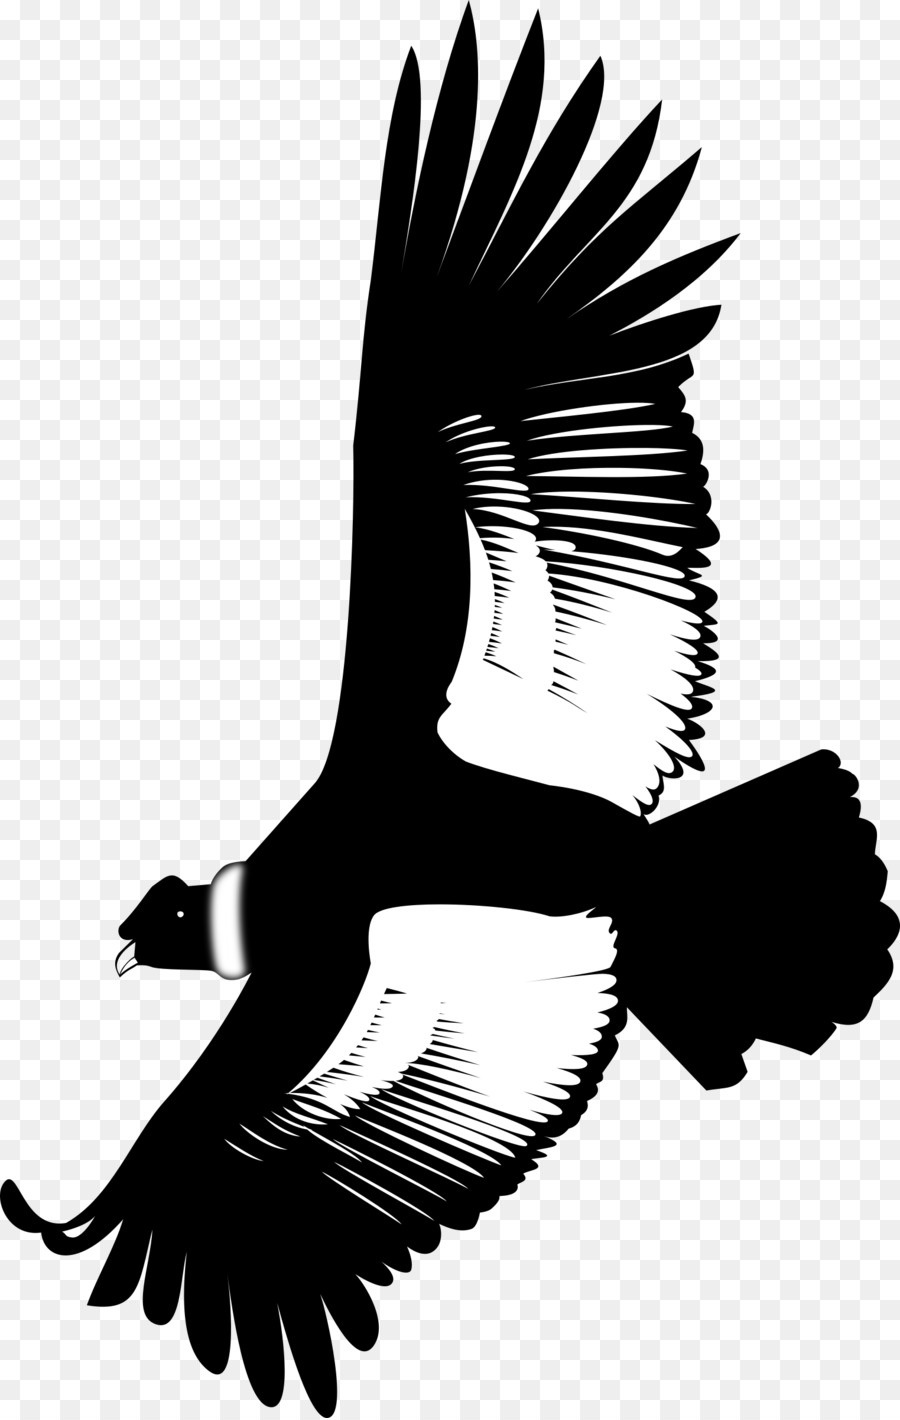 Andean condor sittting clipart picture freeuse download Eagle Bird png download - 1523*2400 - Free Transparent Andean Condor ... picture freeuse download